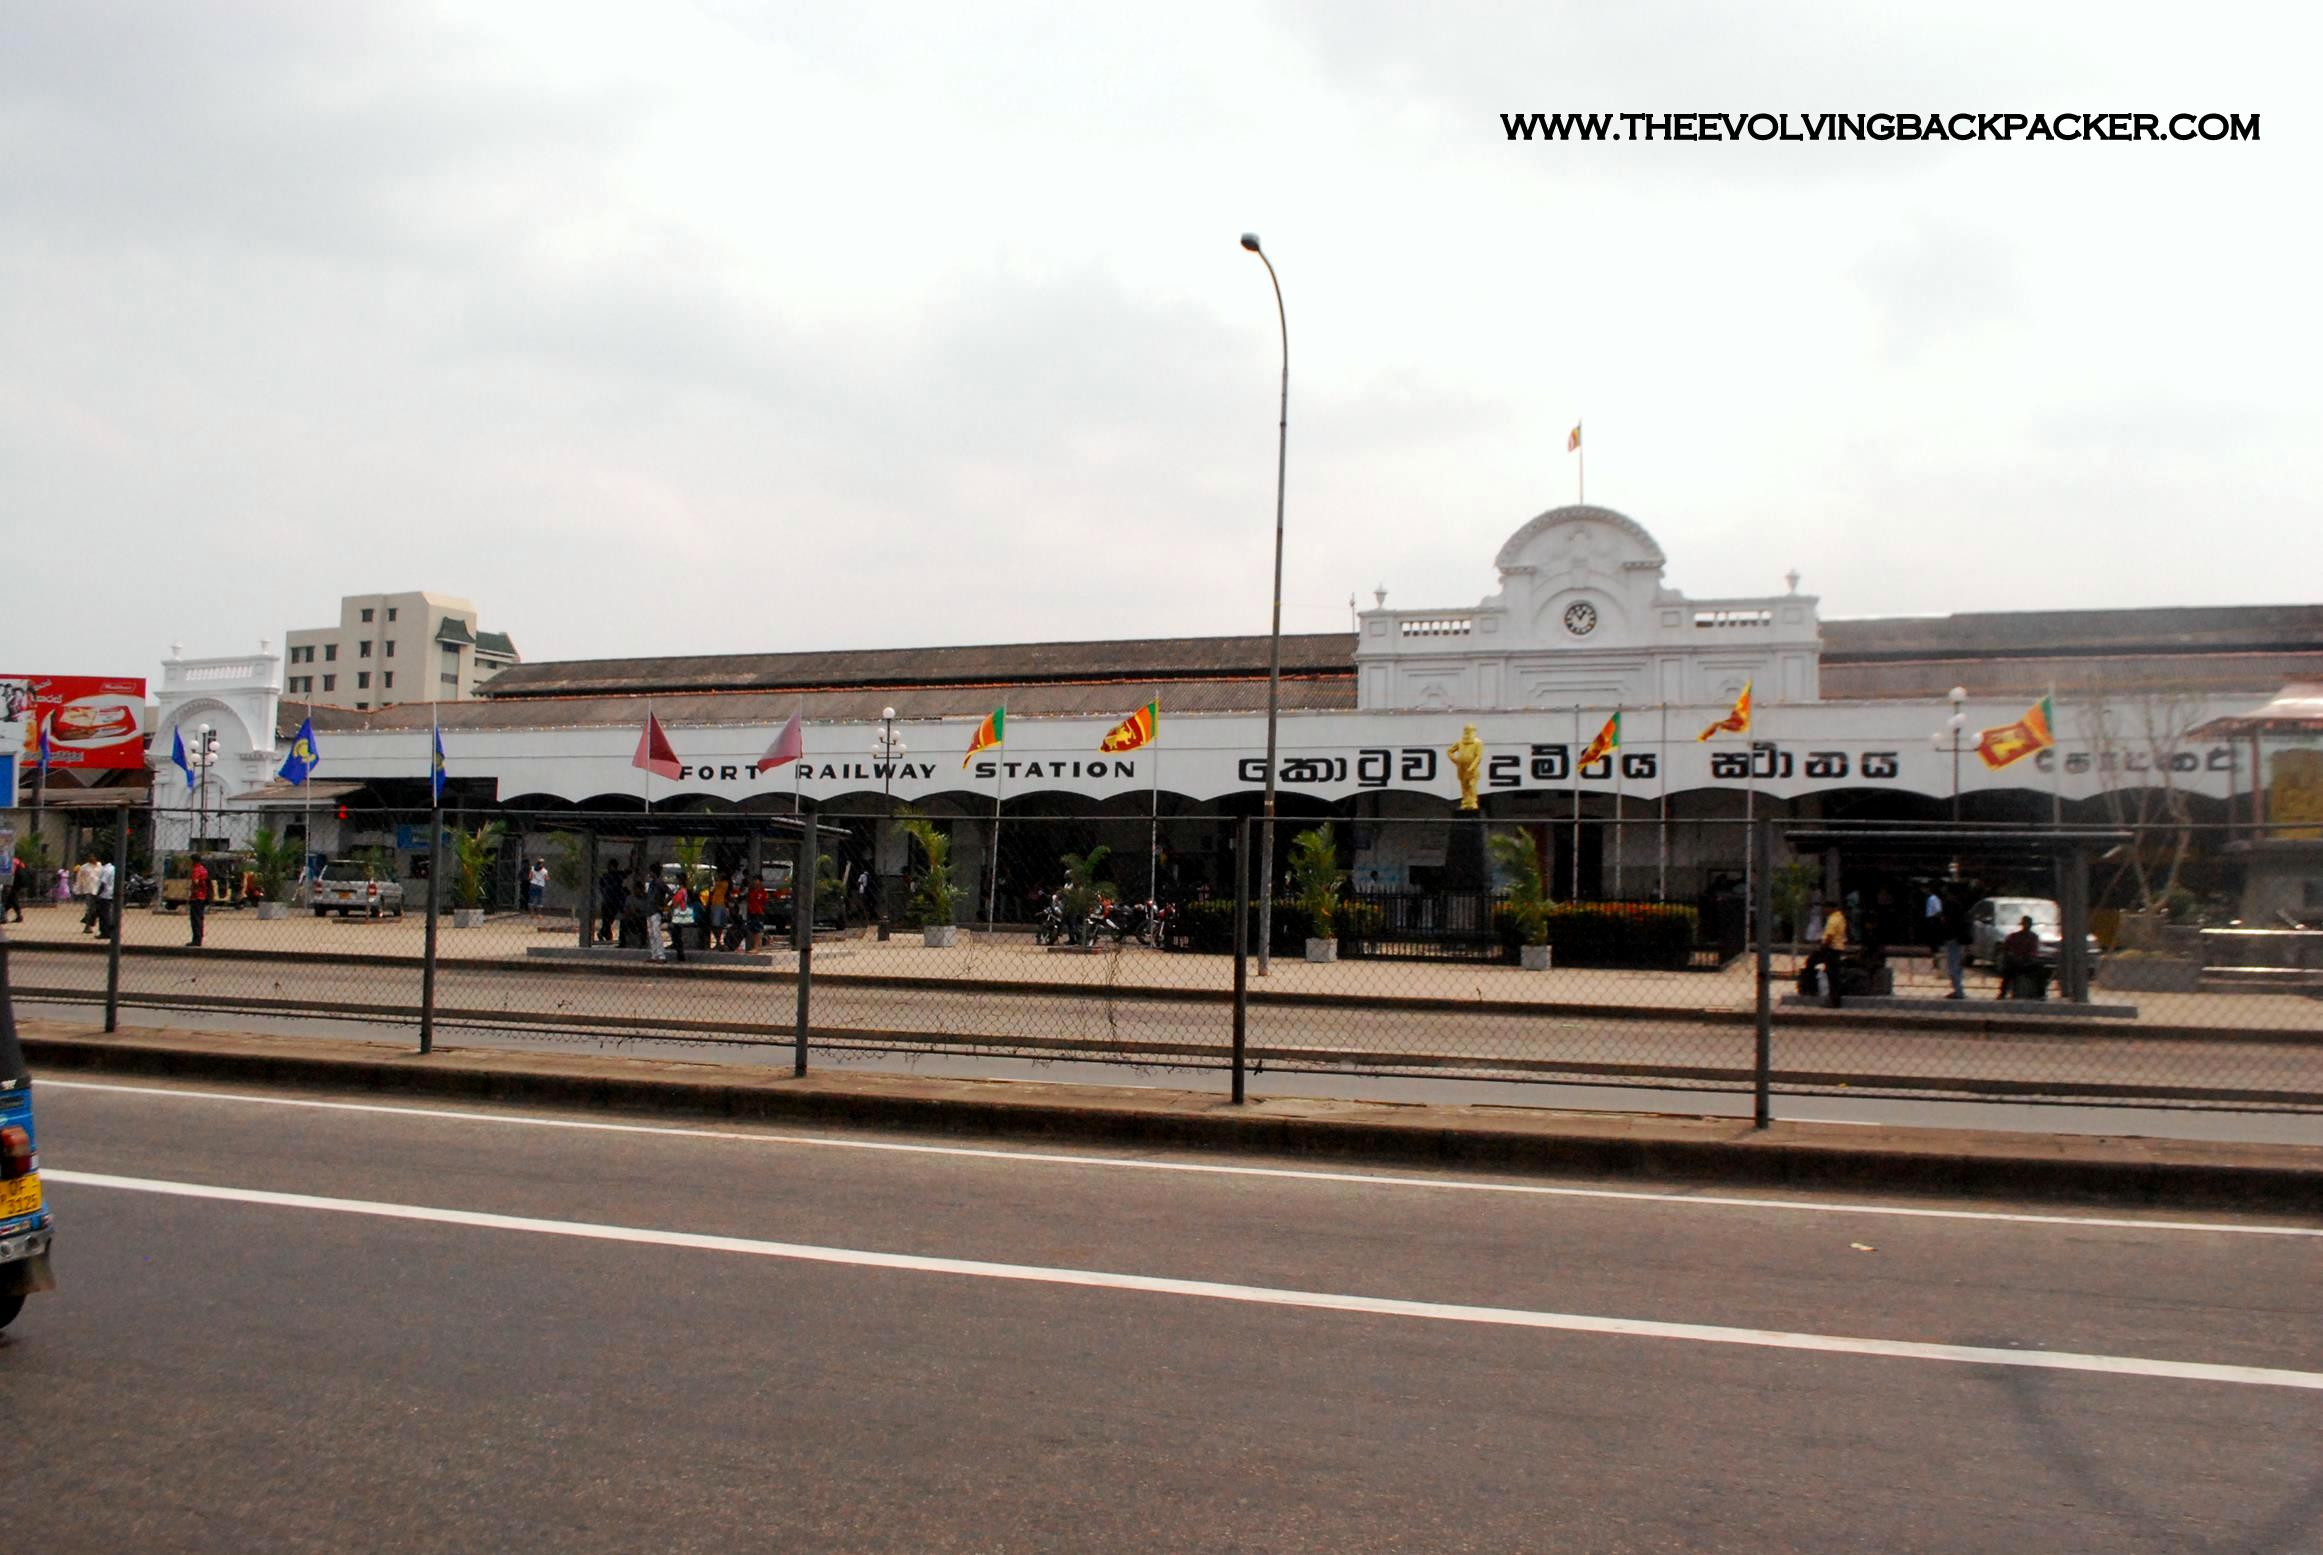 Colombo - Fort Railway station